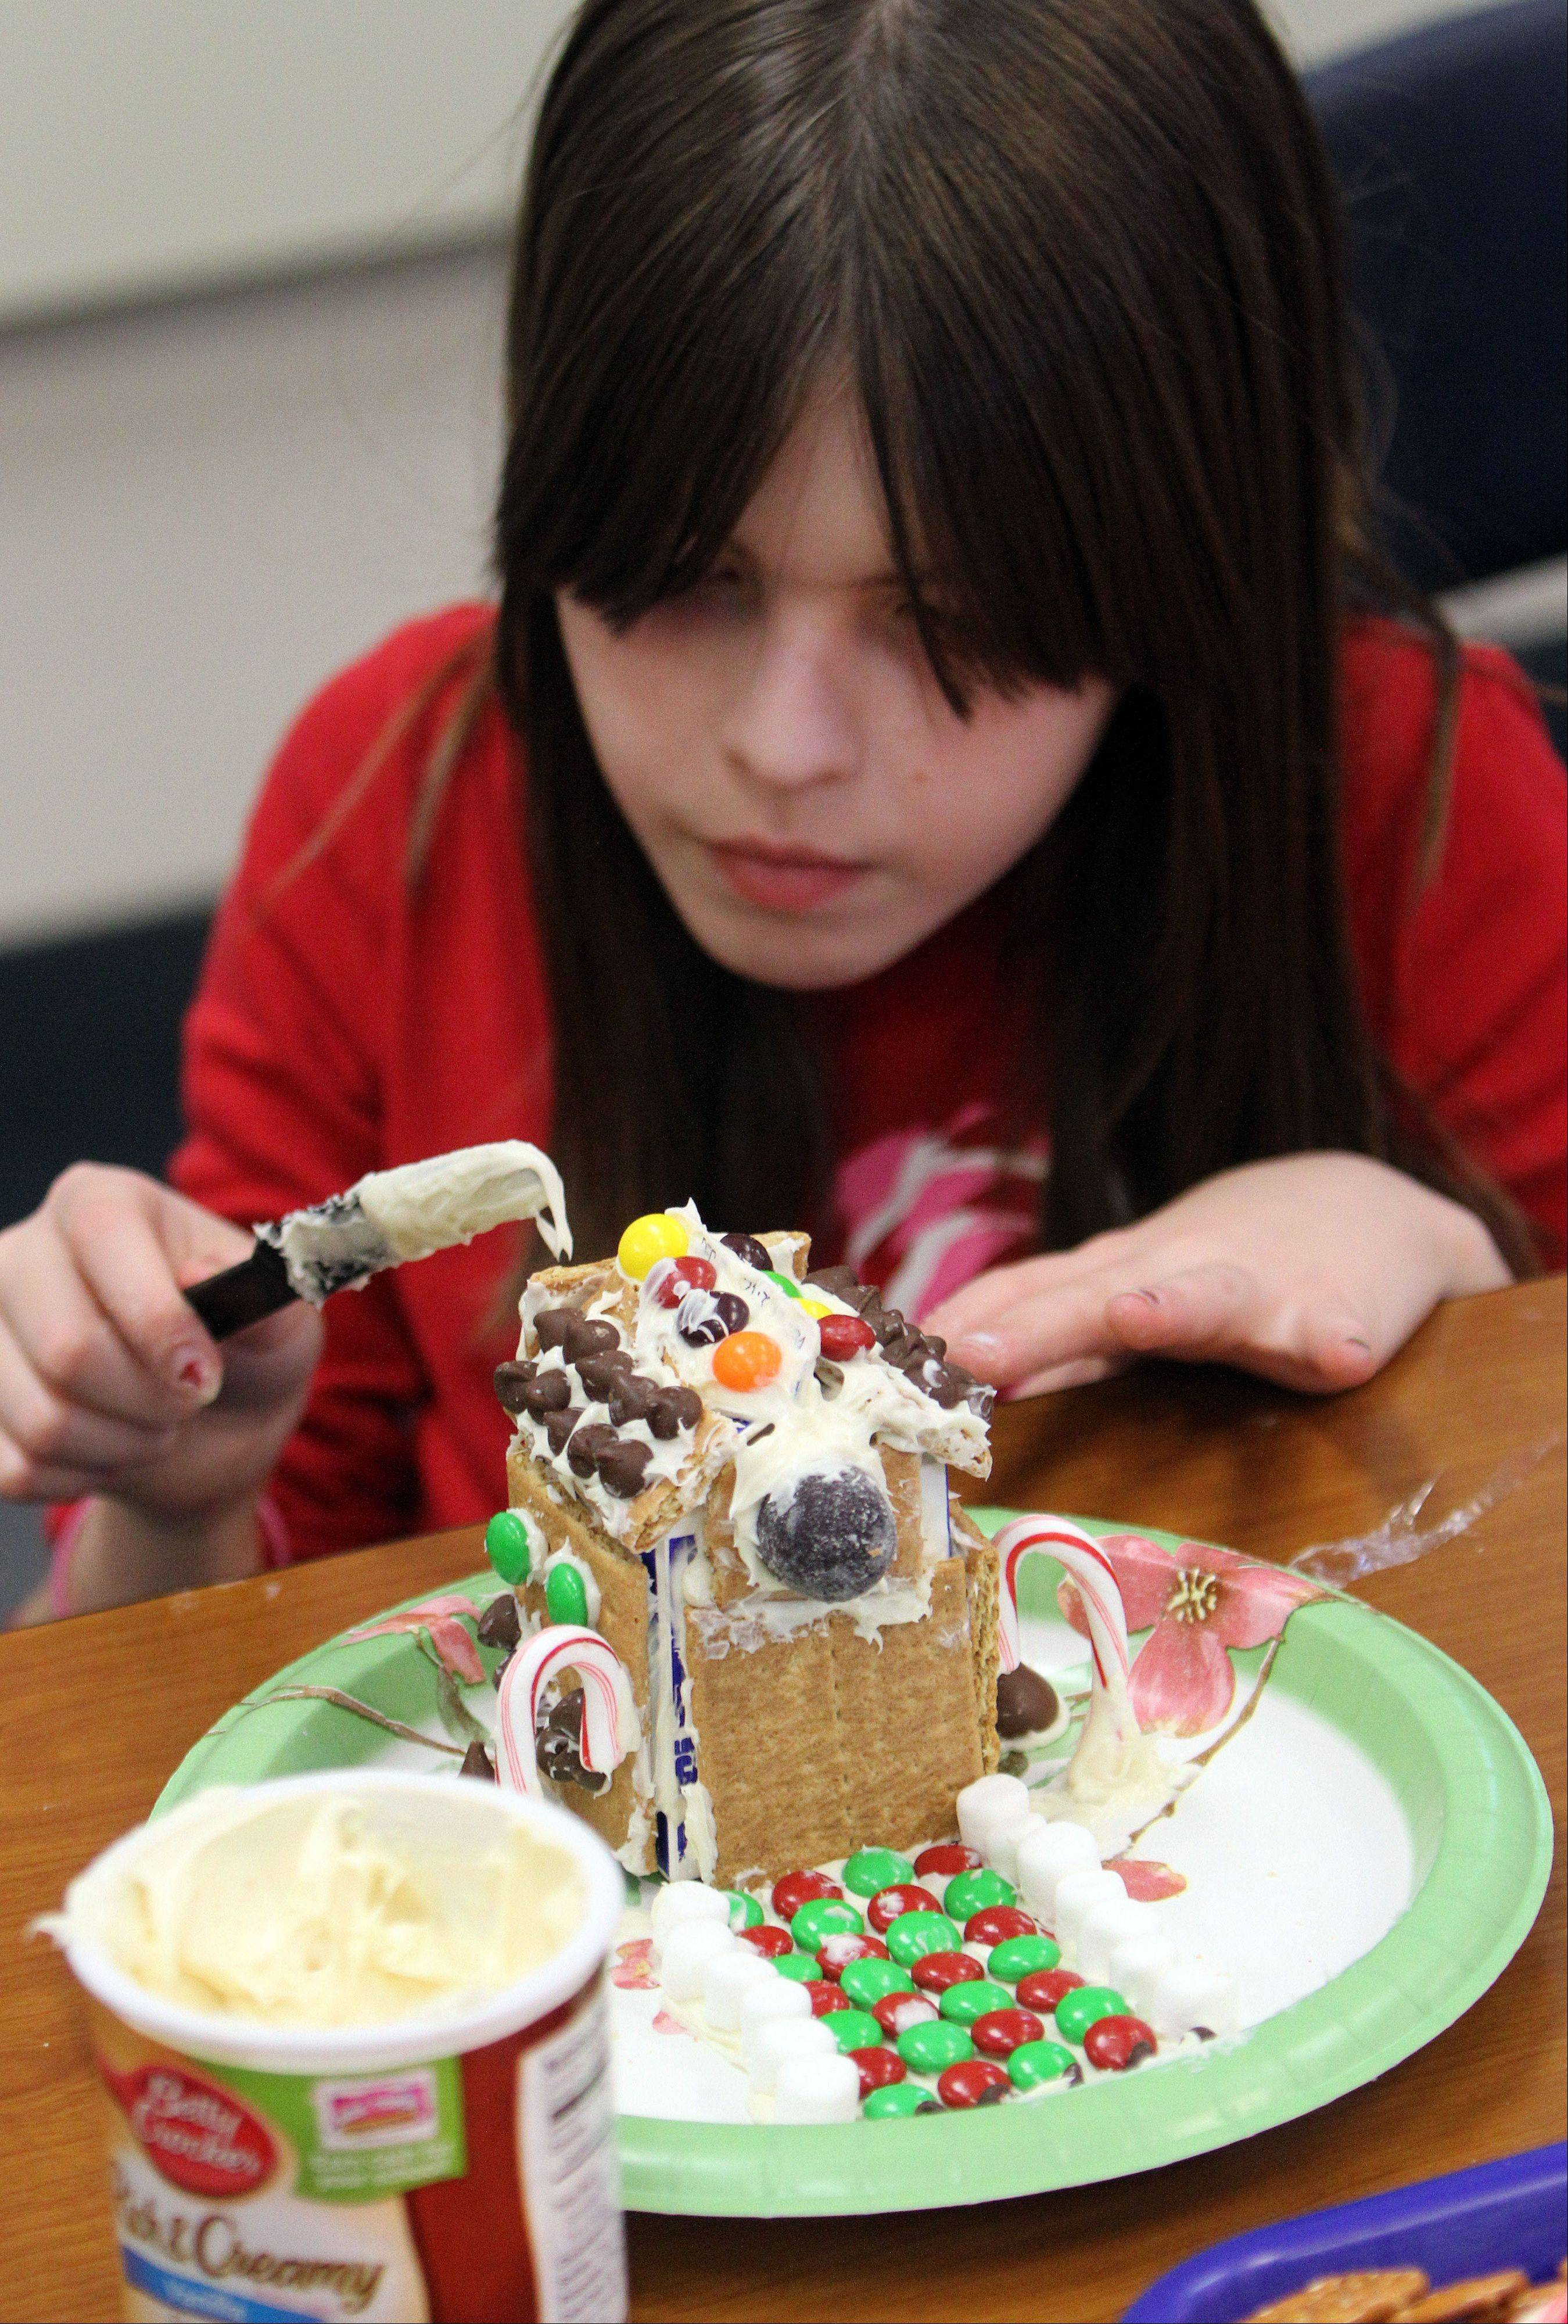 Rockland School fifth-grader Kylie Miller pays attention to detail as she creates her gingerbread house.